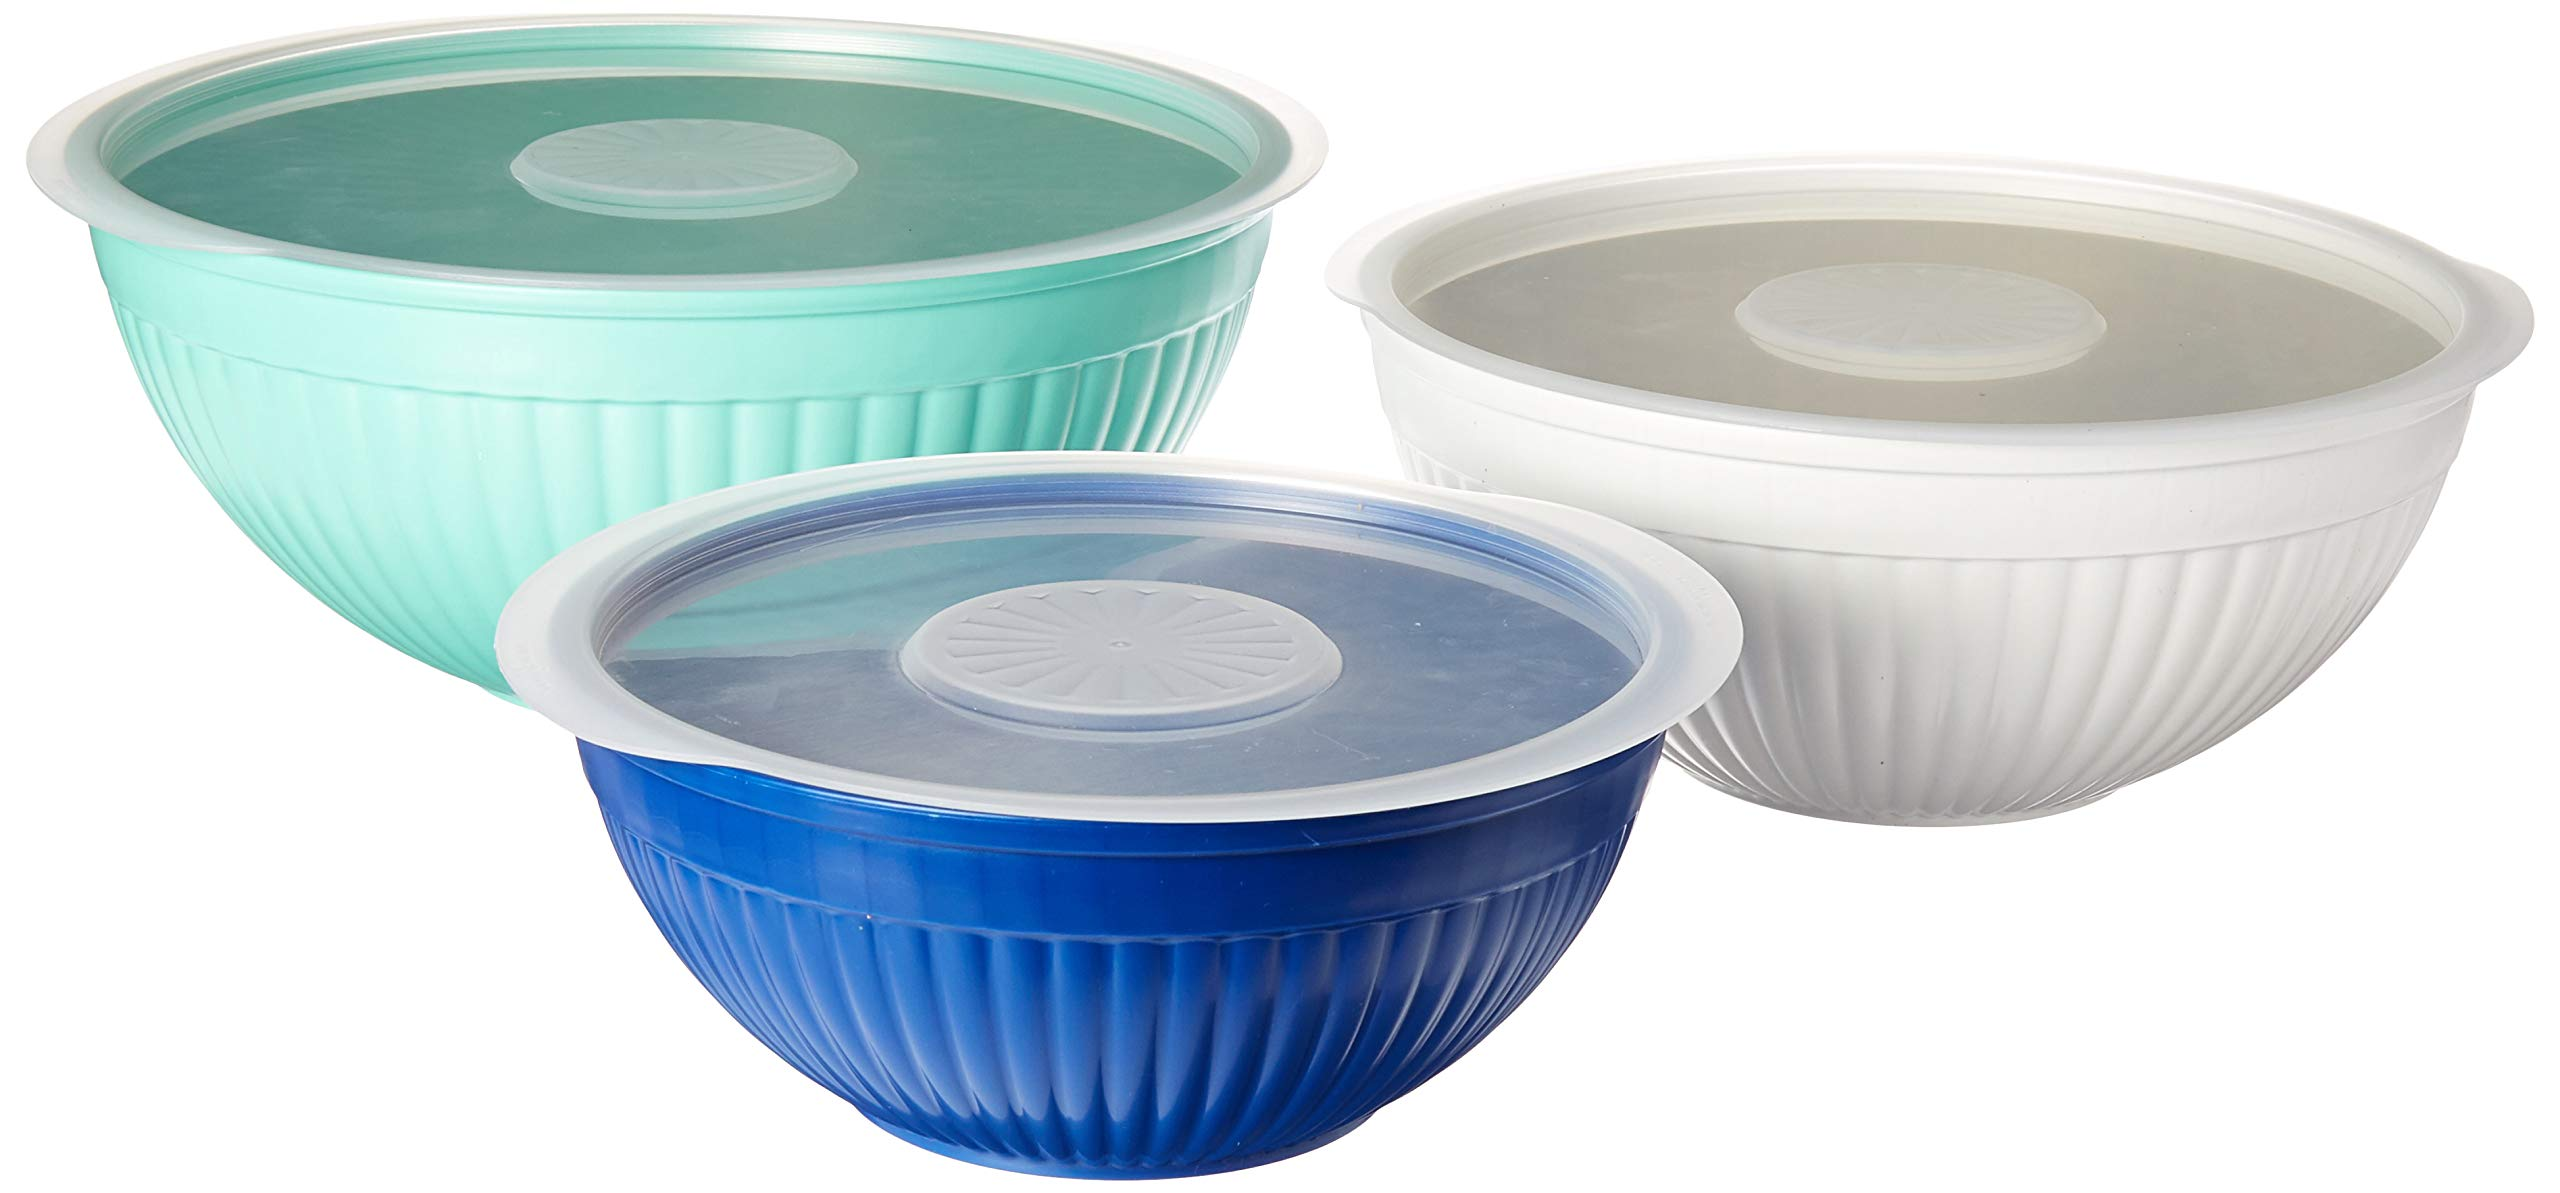 Nordic Ware 69506 Covered Bowl Set, 6-pc, Set of 6, Coastal Colors